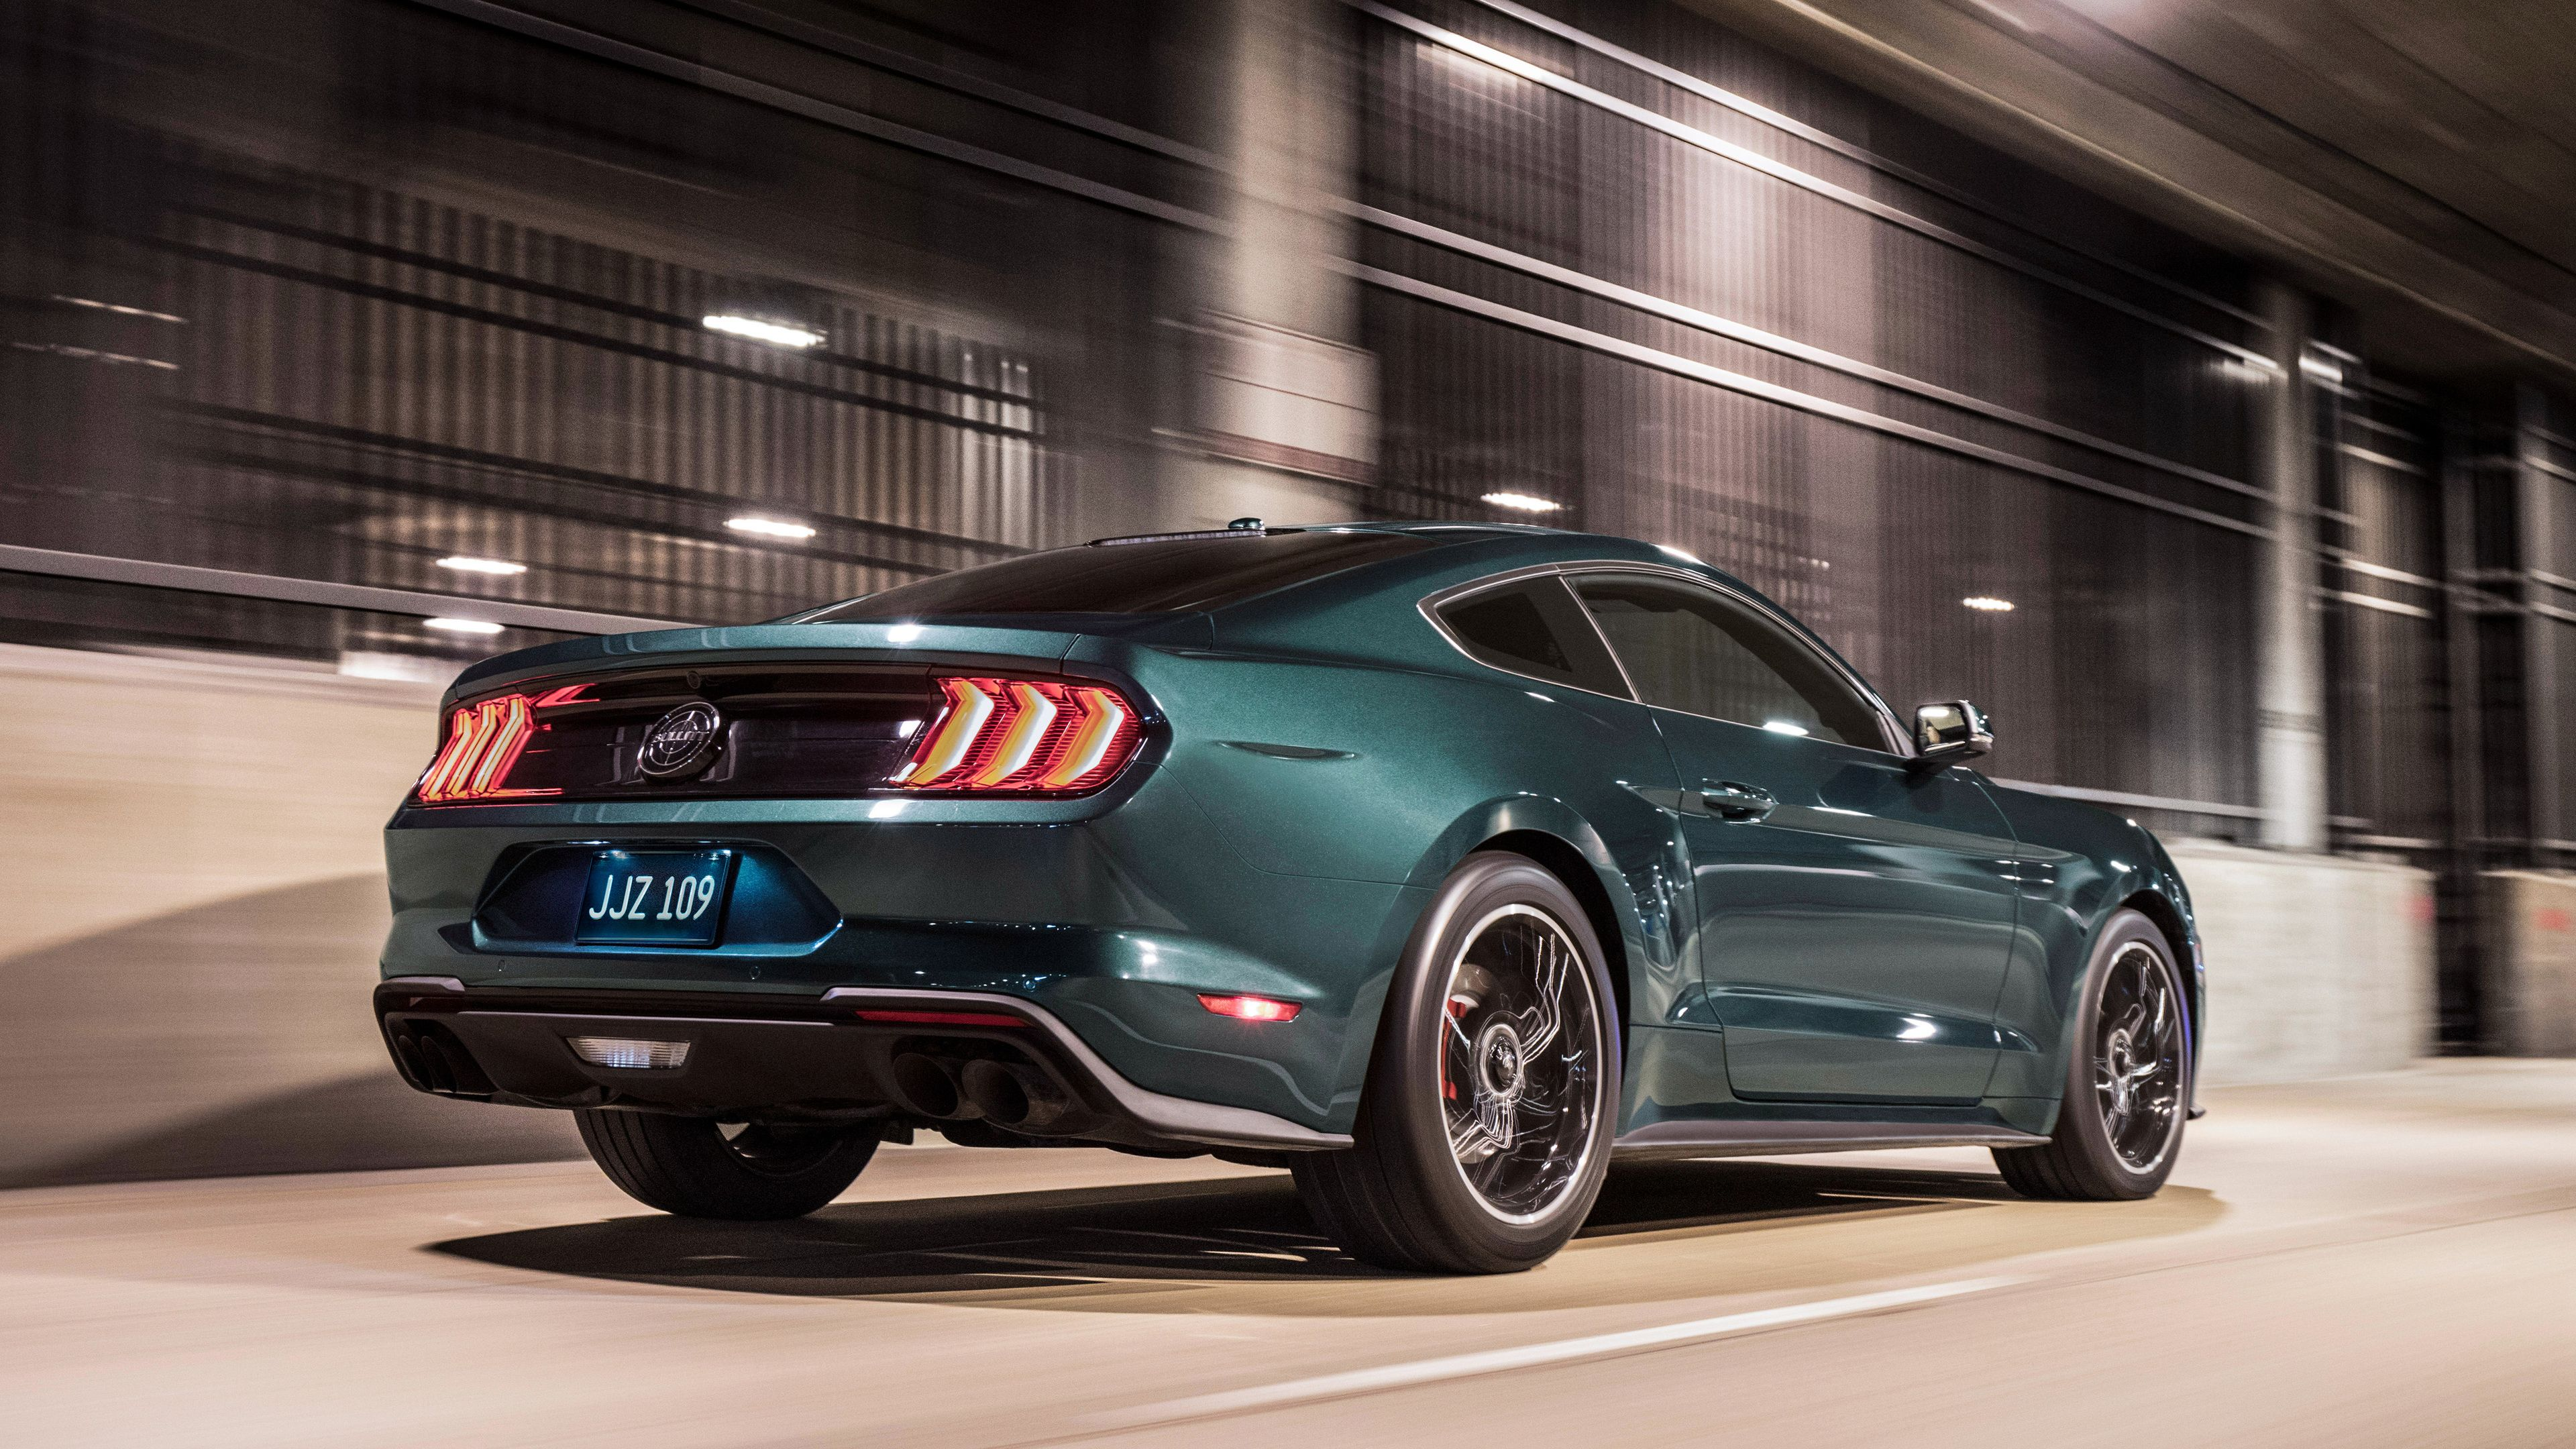 Wallpaper 4k 2019 Ford Mustang Bullitt Rear 4k 2019 Cars Wallpapers 4k Wallpapers Cars Wallpapers Ford Mustang Bullitt Wallpapers Ford Mustang Wallpapers H Ford Mustang Steve Mcqueen